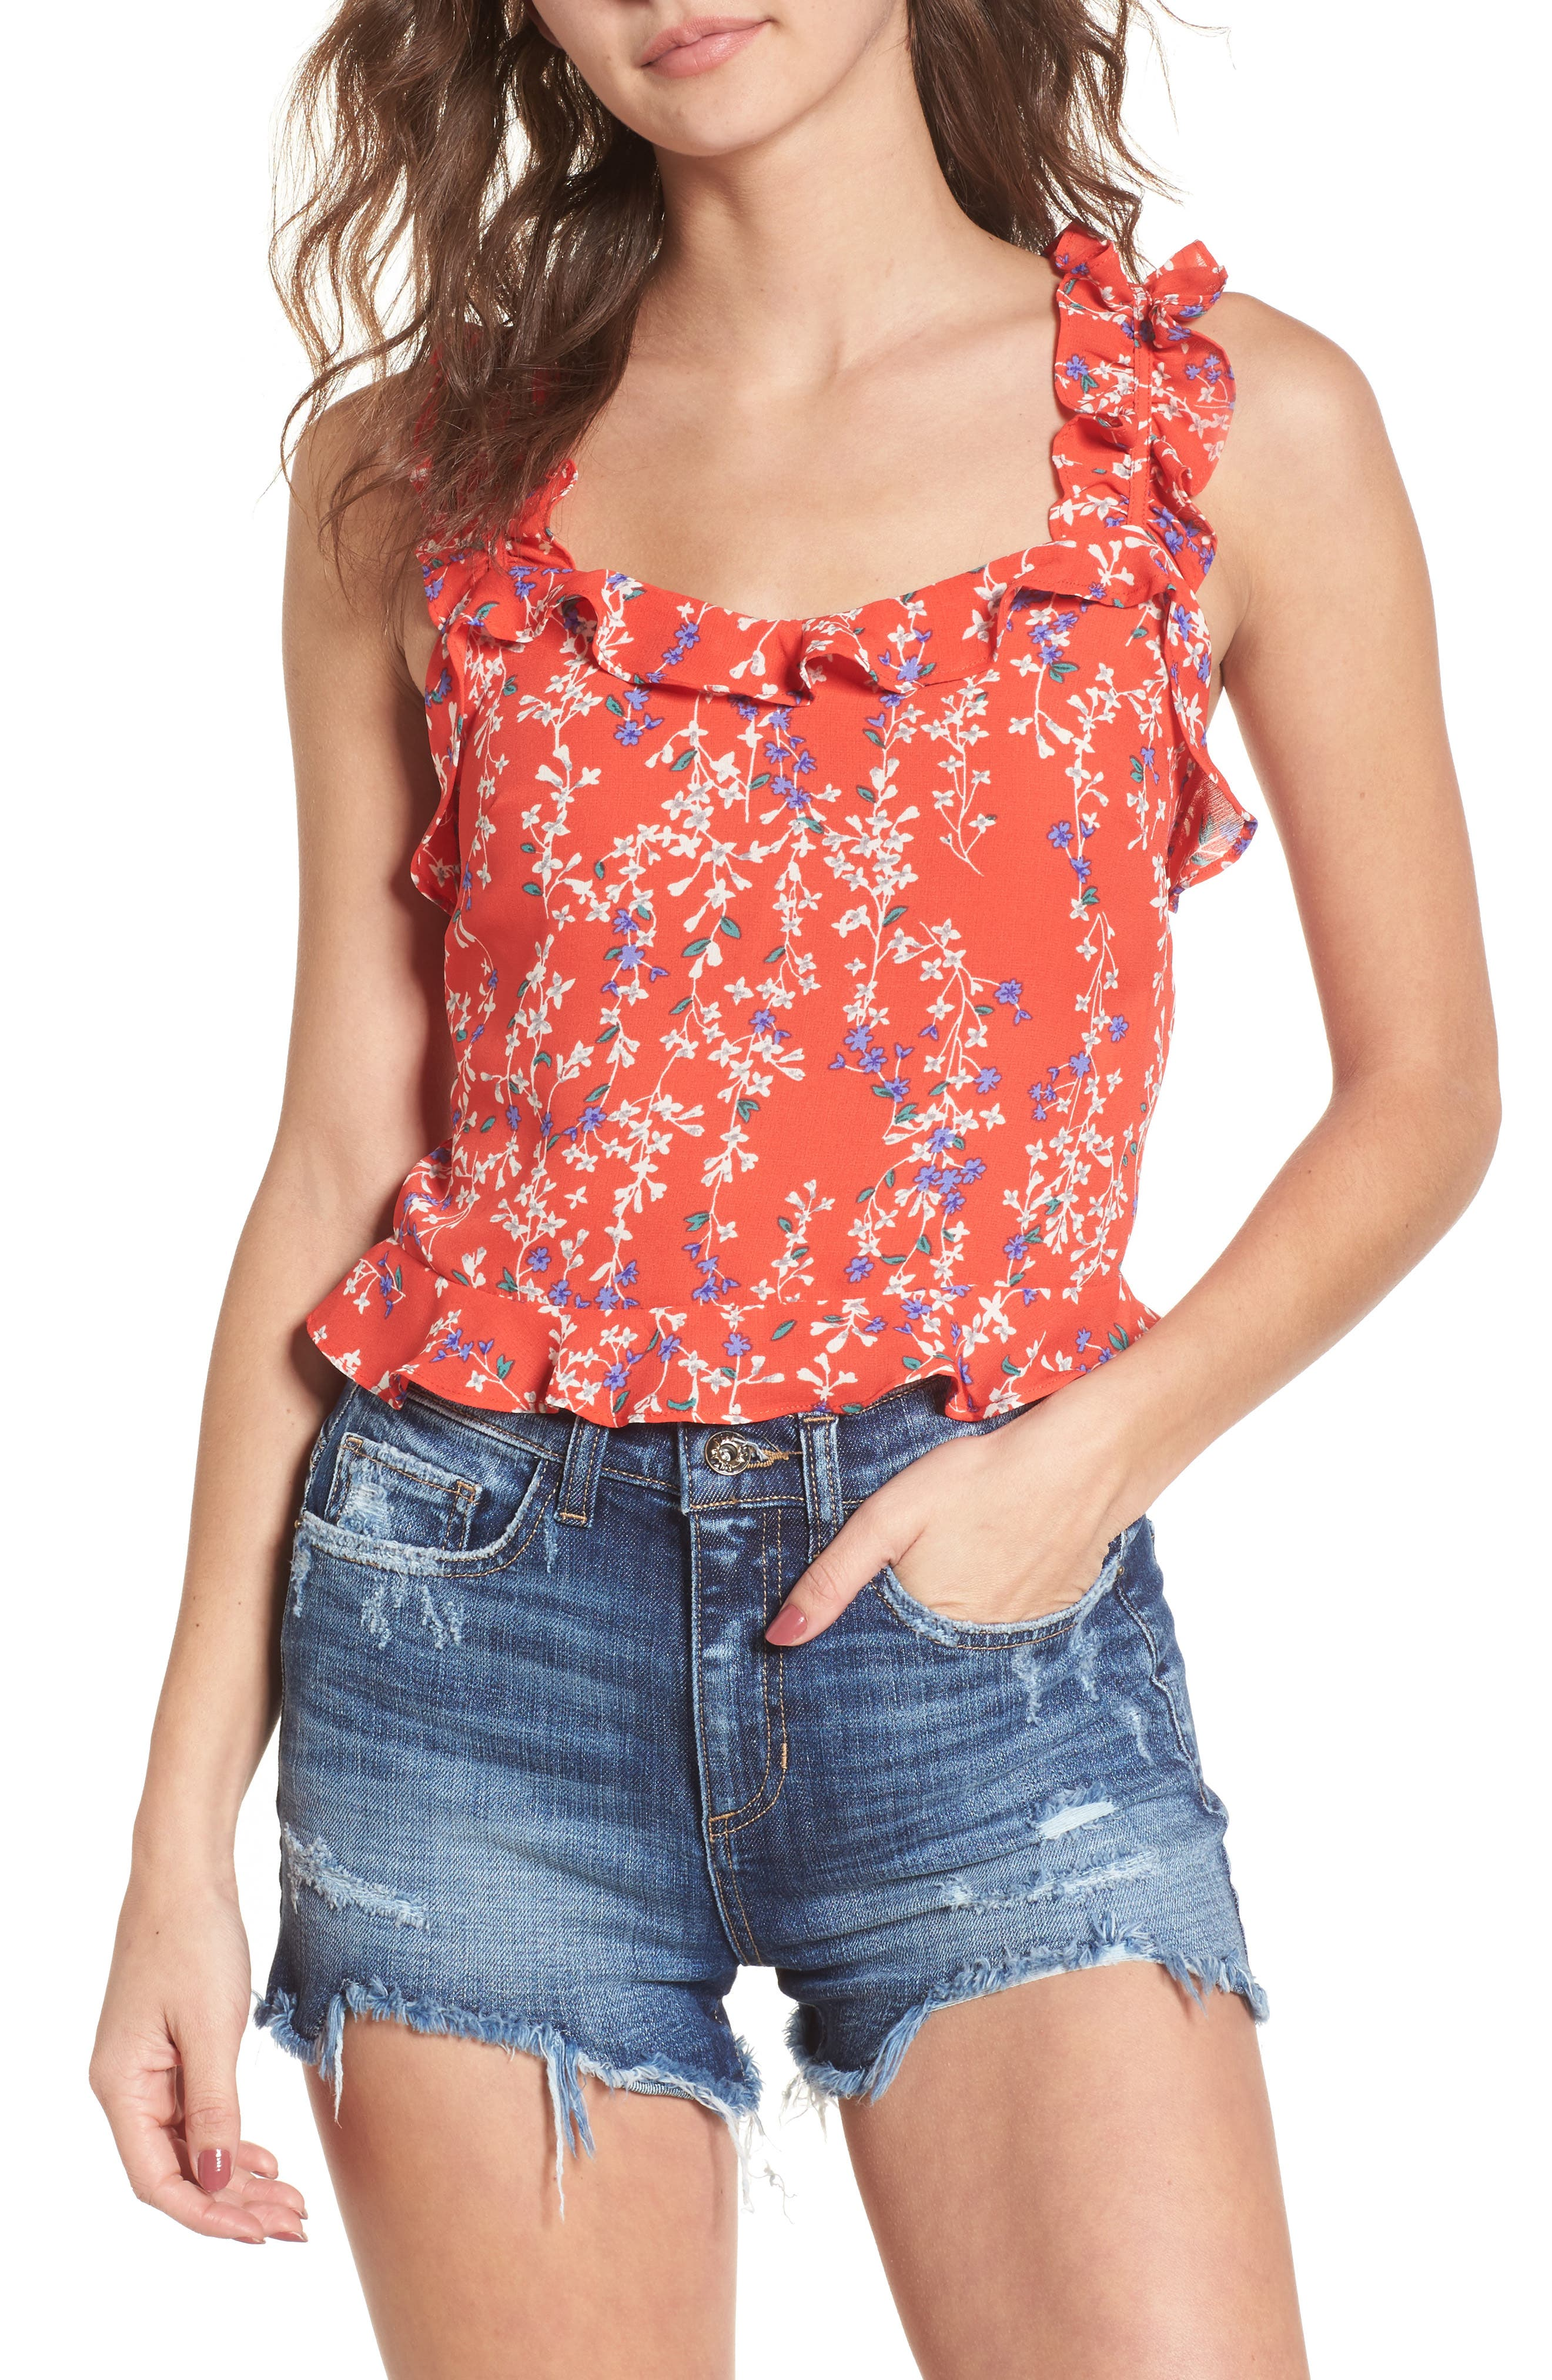 Main Image - Moon River Floral Ruffle Crop Top